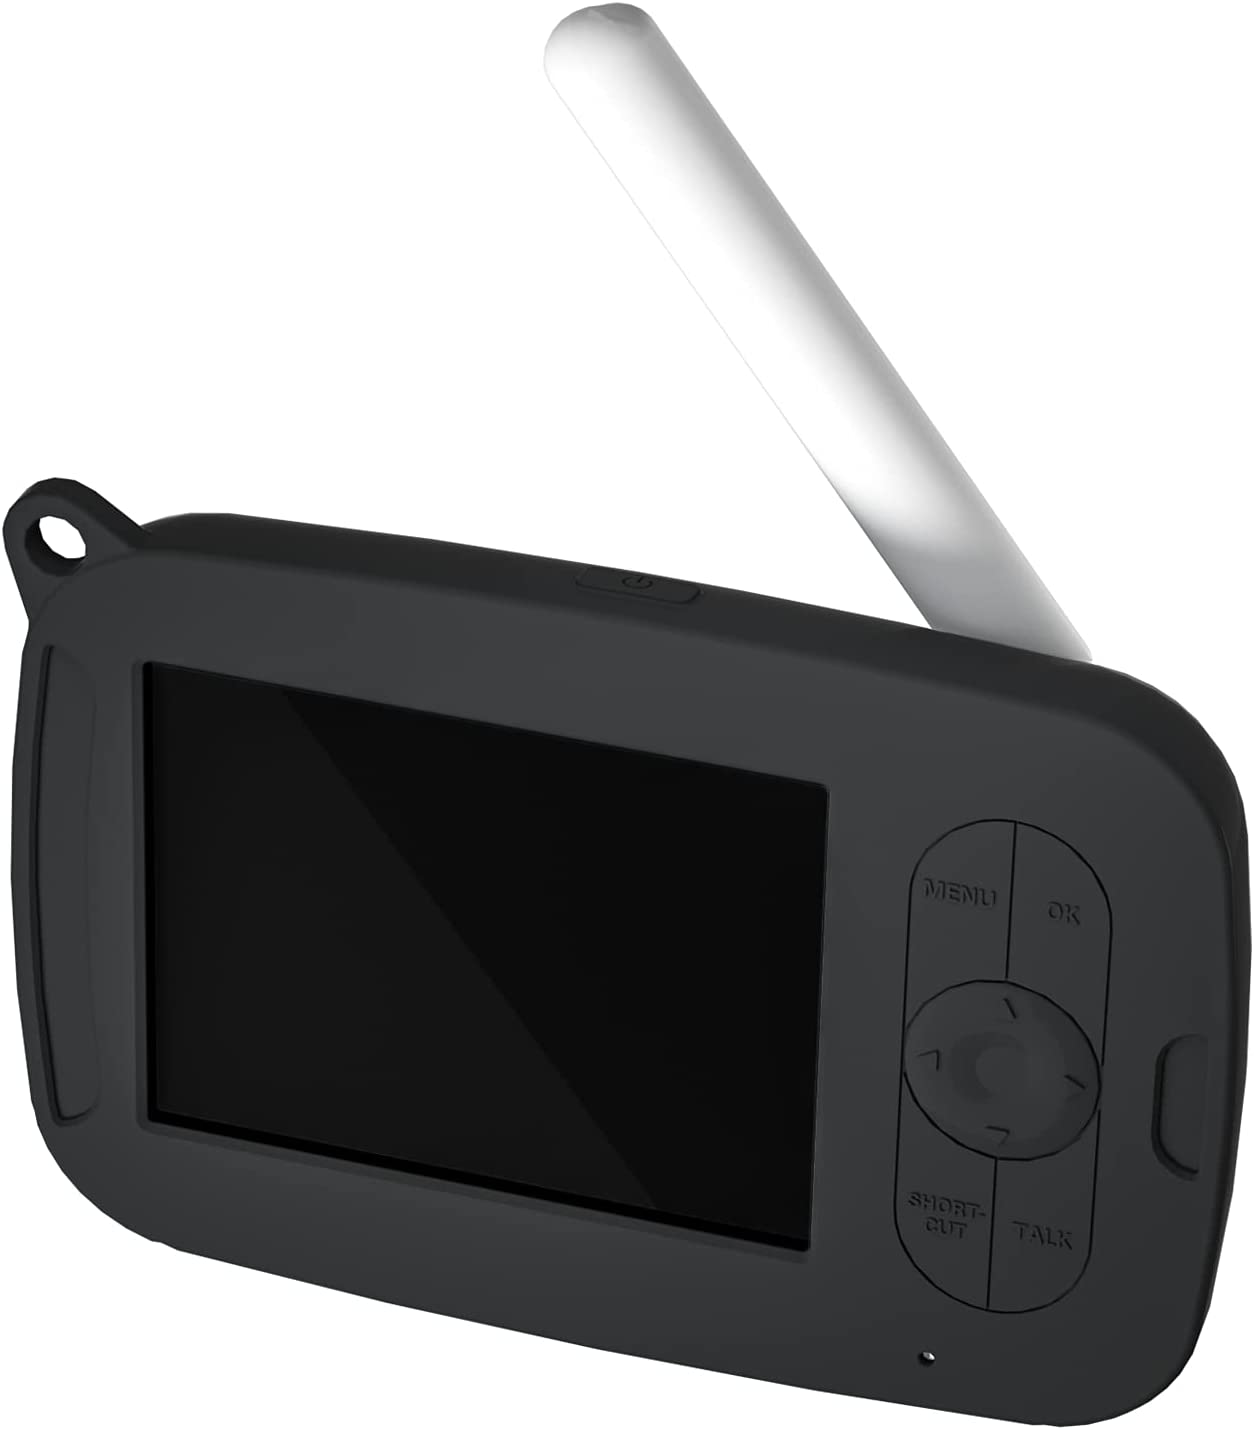 Aobelieve Silicone Cover for Infant Optics DXR-8 Standalone Monitor, Black